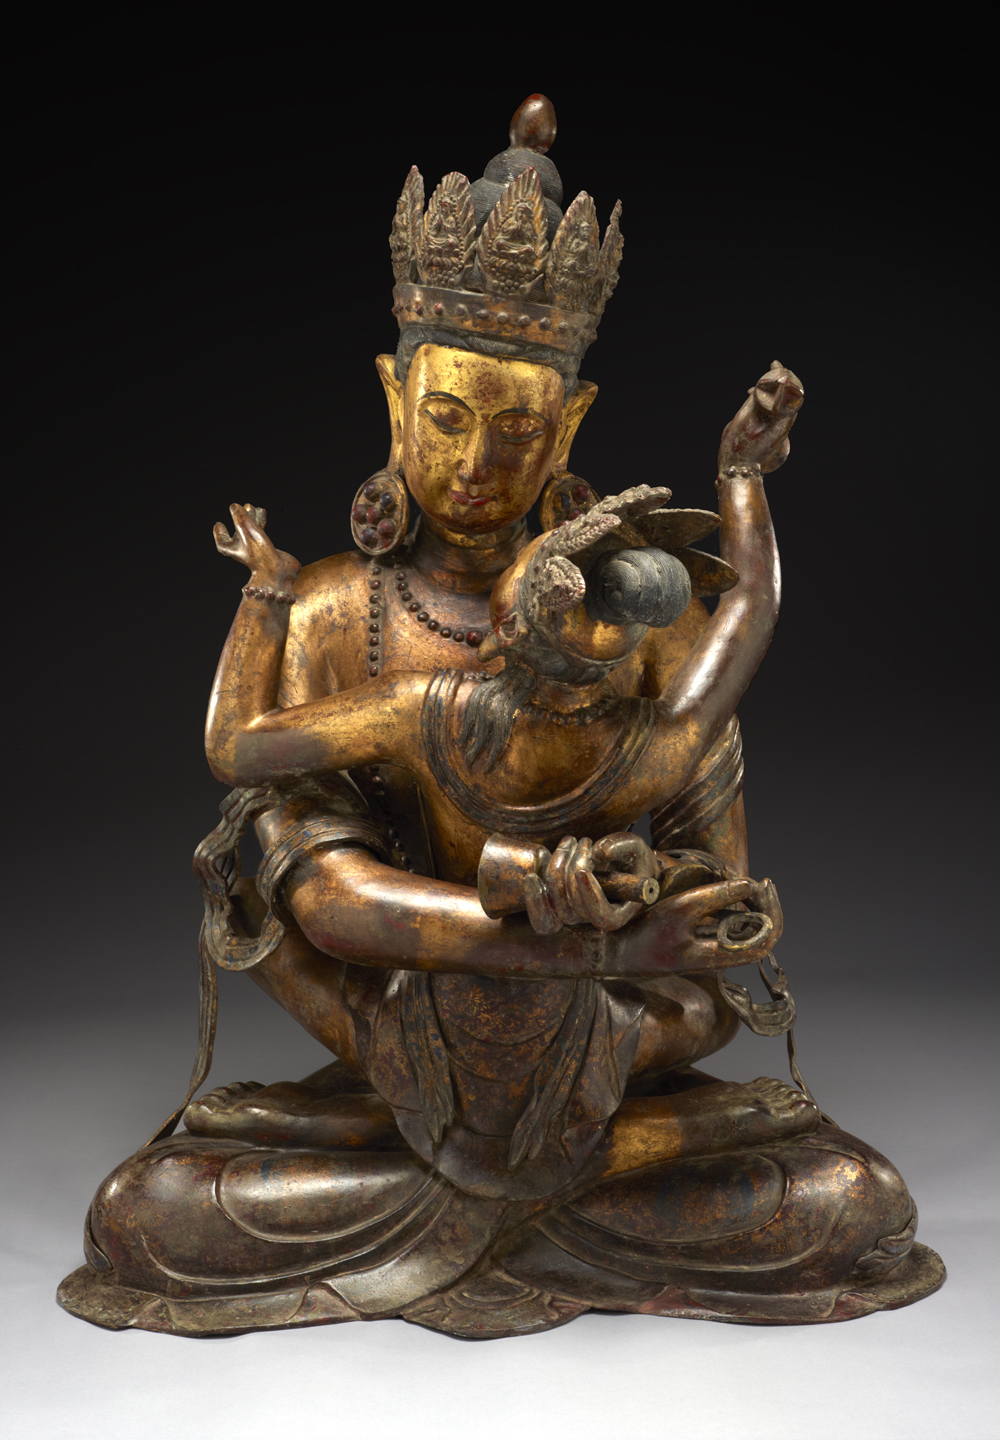 Vajradhara (Holder of the Thunderbolt) Sino-Tibetan culture, early 19th century, Courtesy of The Crow Collection of Asian Art